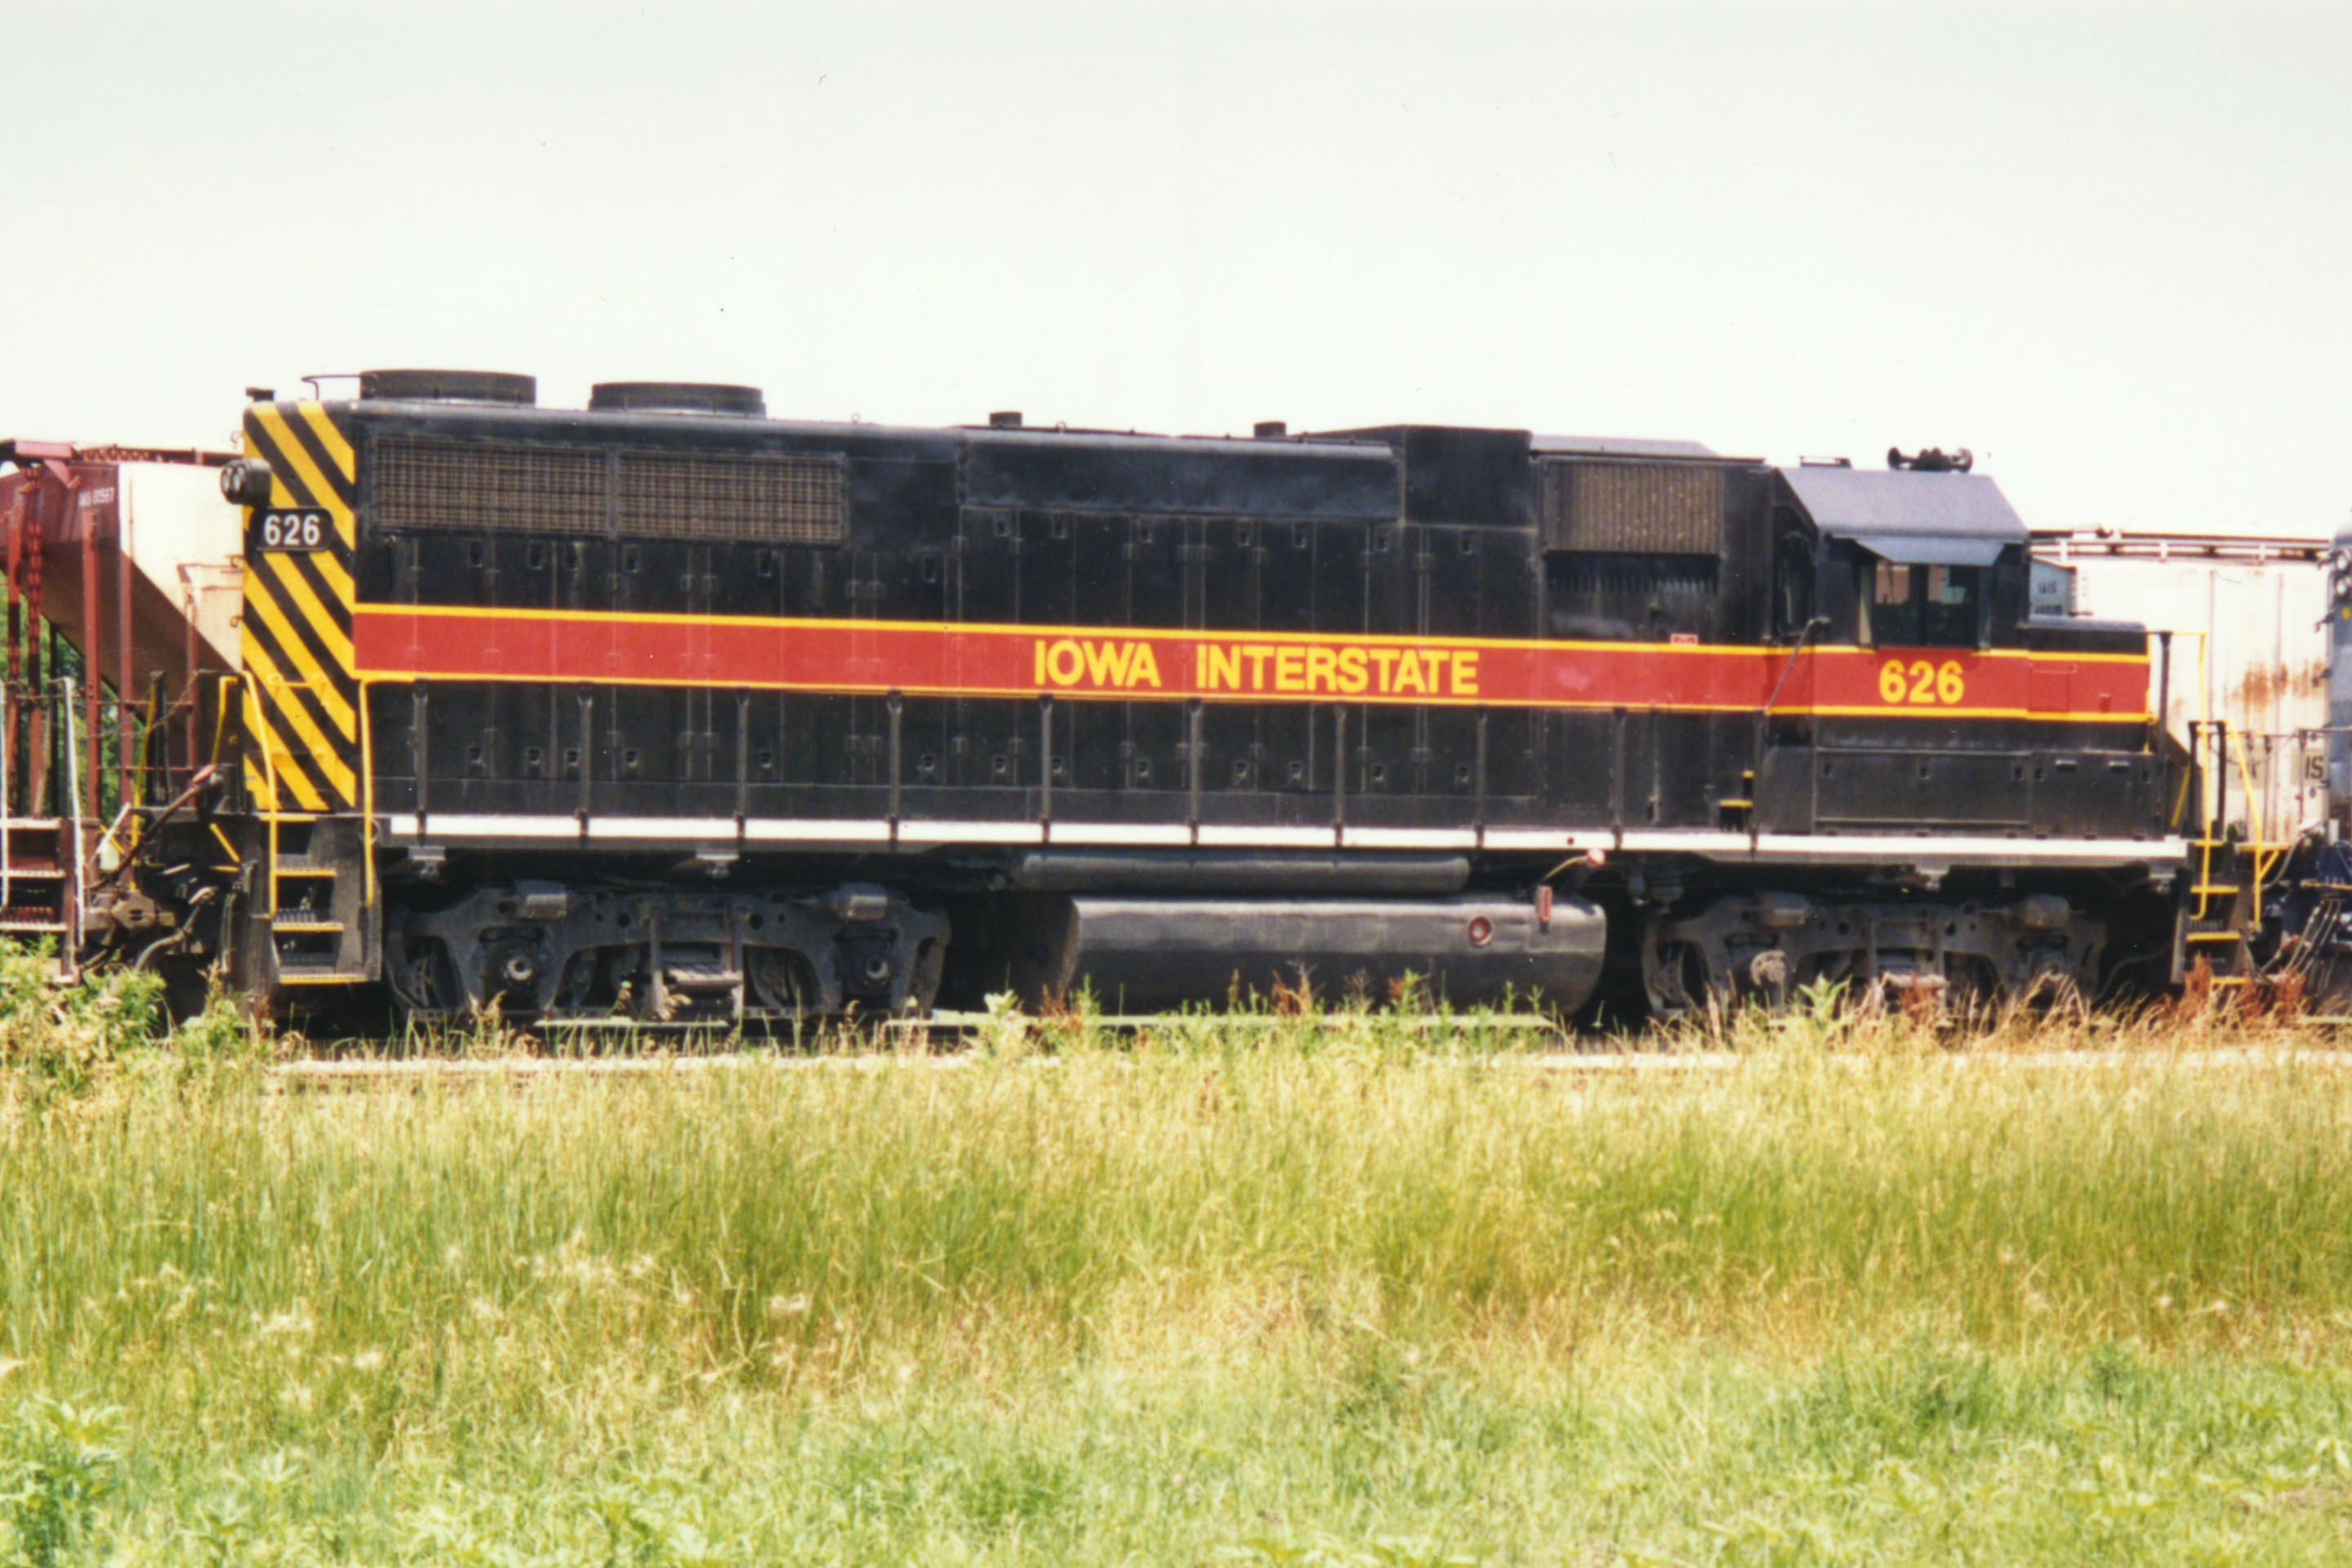 IAIS 626 at Altoona, IA on 01-Jul-1995